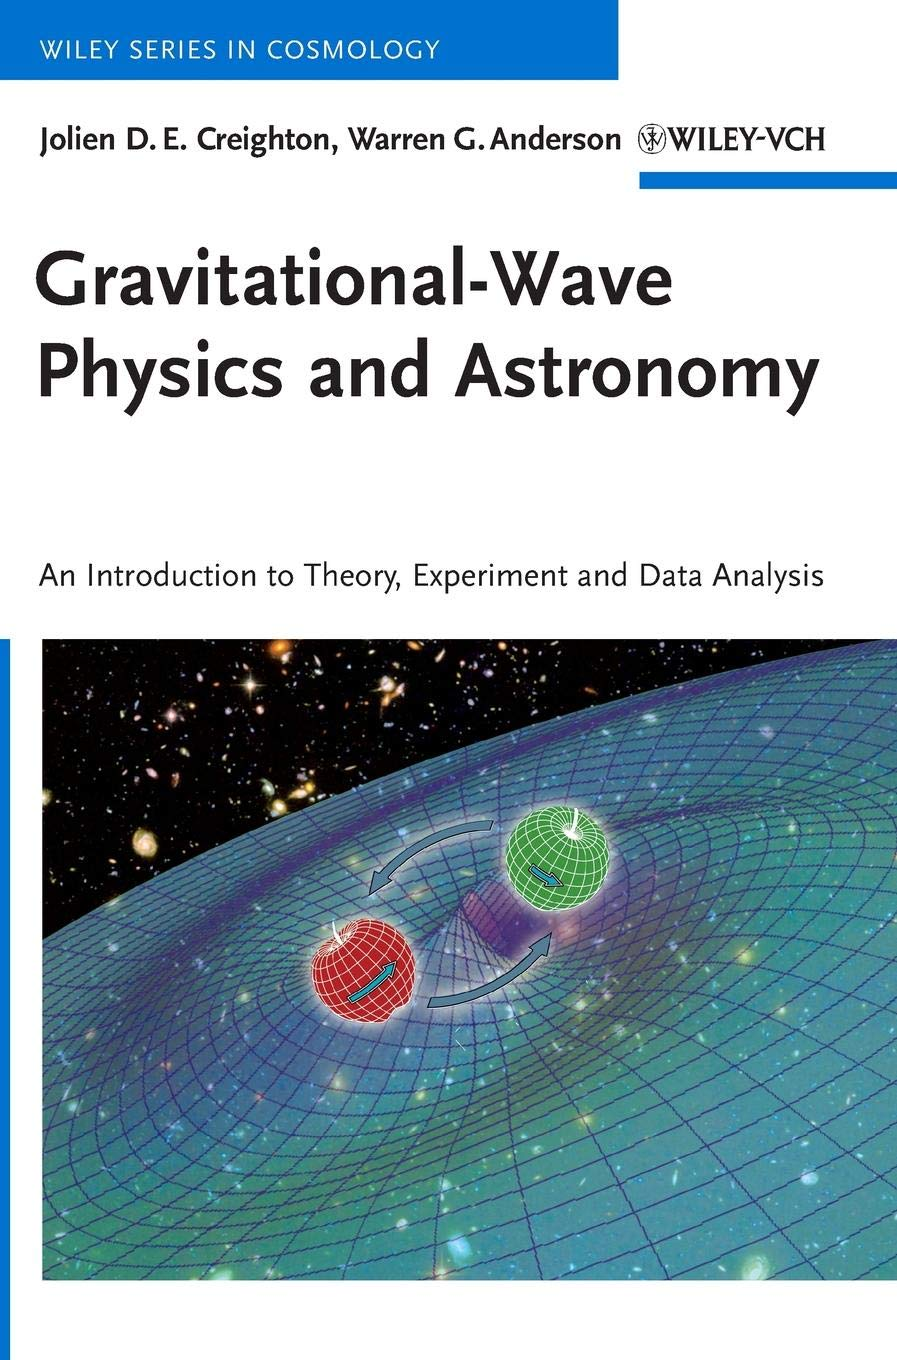 Gravitational-Wave Physics and Astronomy: An Introduction to Theory, Experiment and Data Analysis Wiley Series in Cosmology: Amazon.es: Jolien D. E. ...